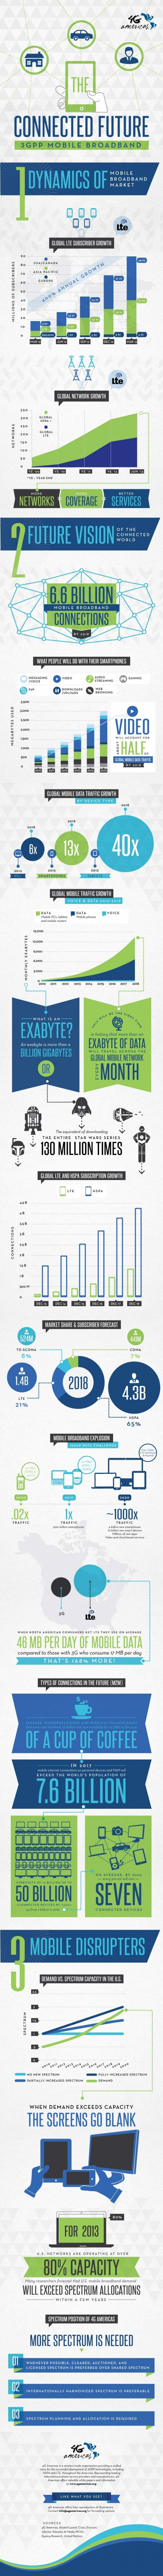 Mobile Broadband Connected Future #Infographic